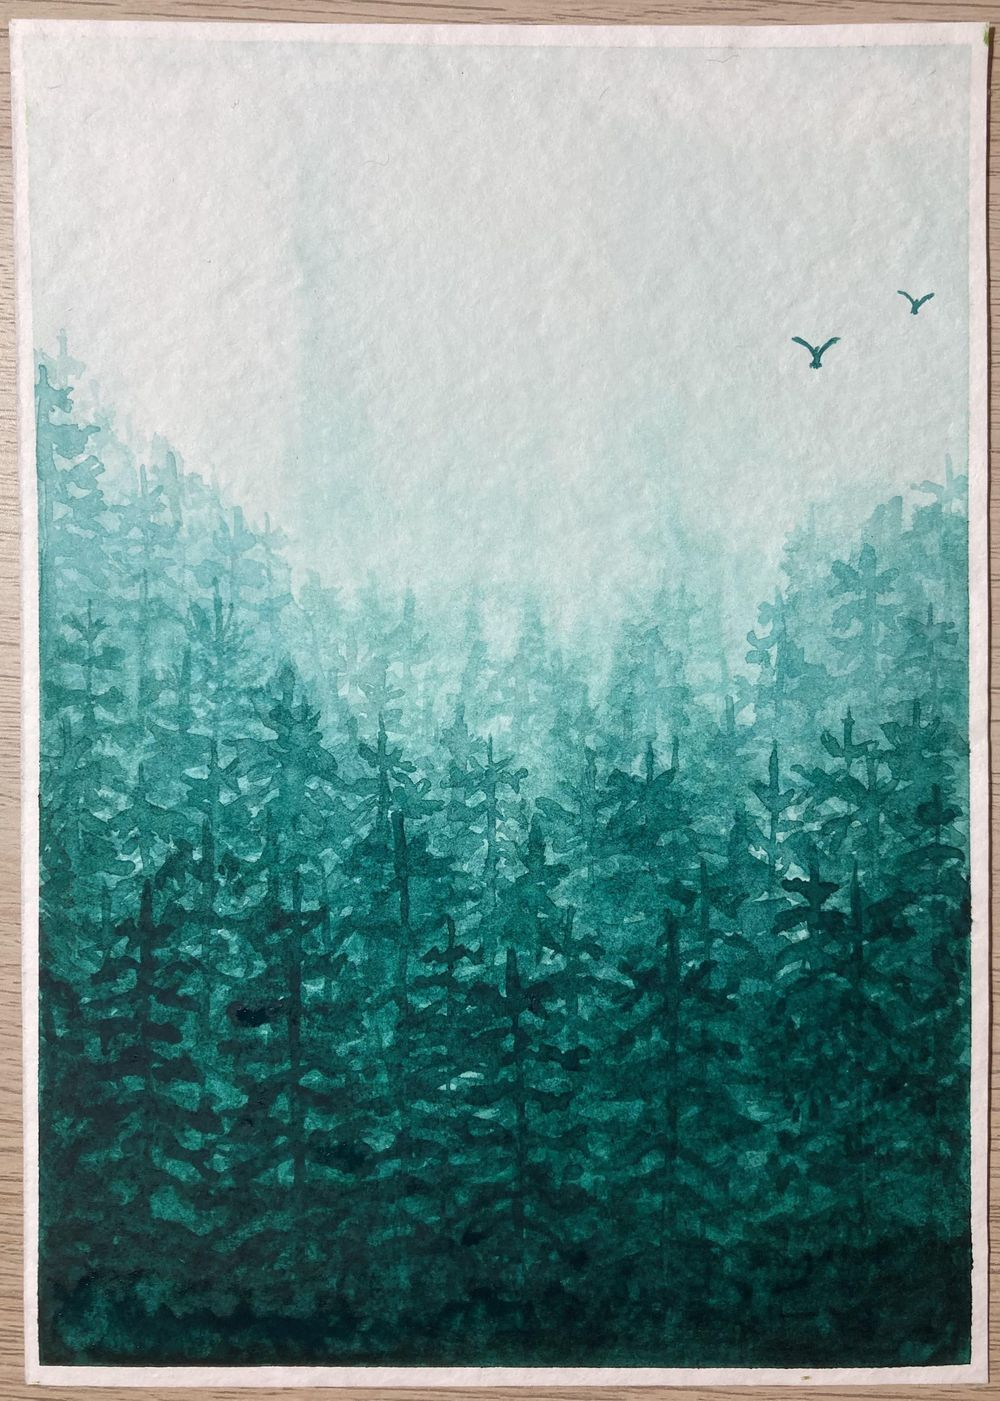 Monochrome Forest in Viridian Green - image 1 - student project